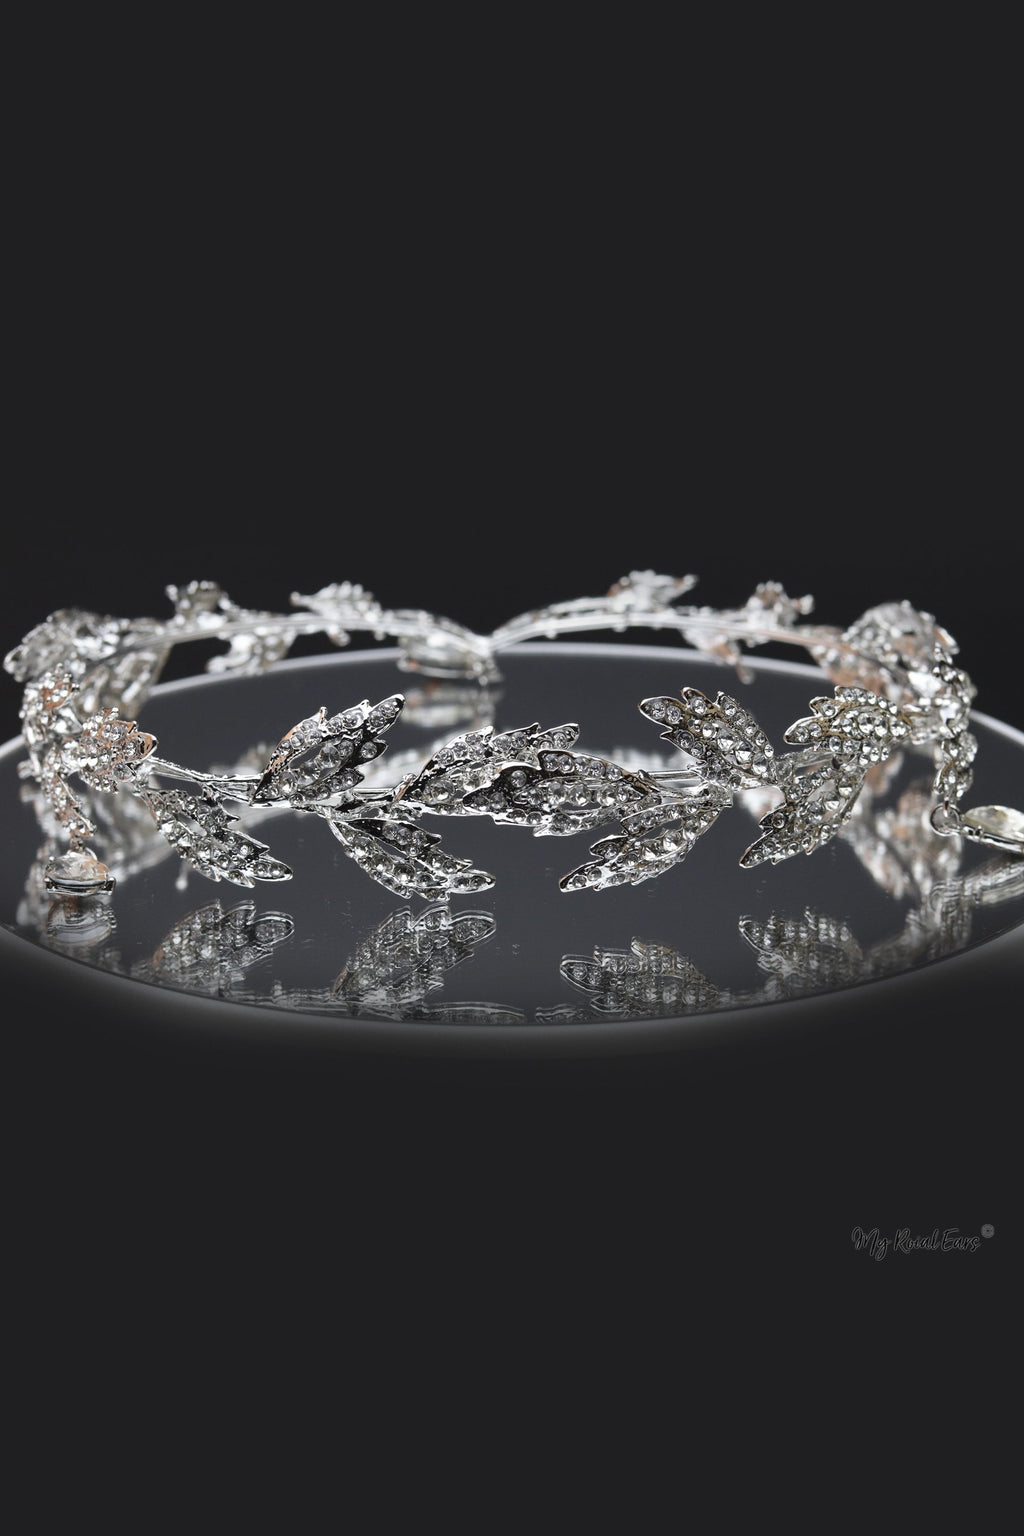 Queen Susan Silver- stunning and elegant headpiece - My Roial Ears LTD